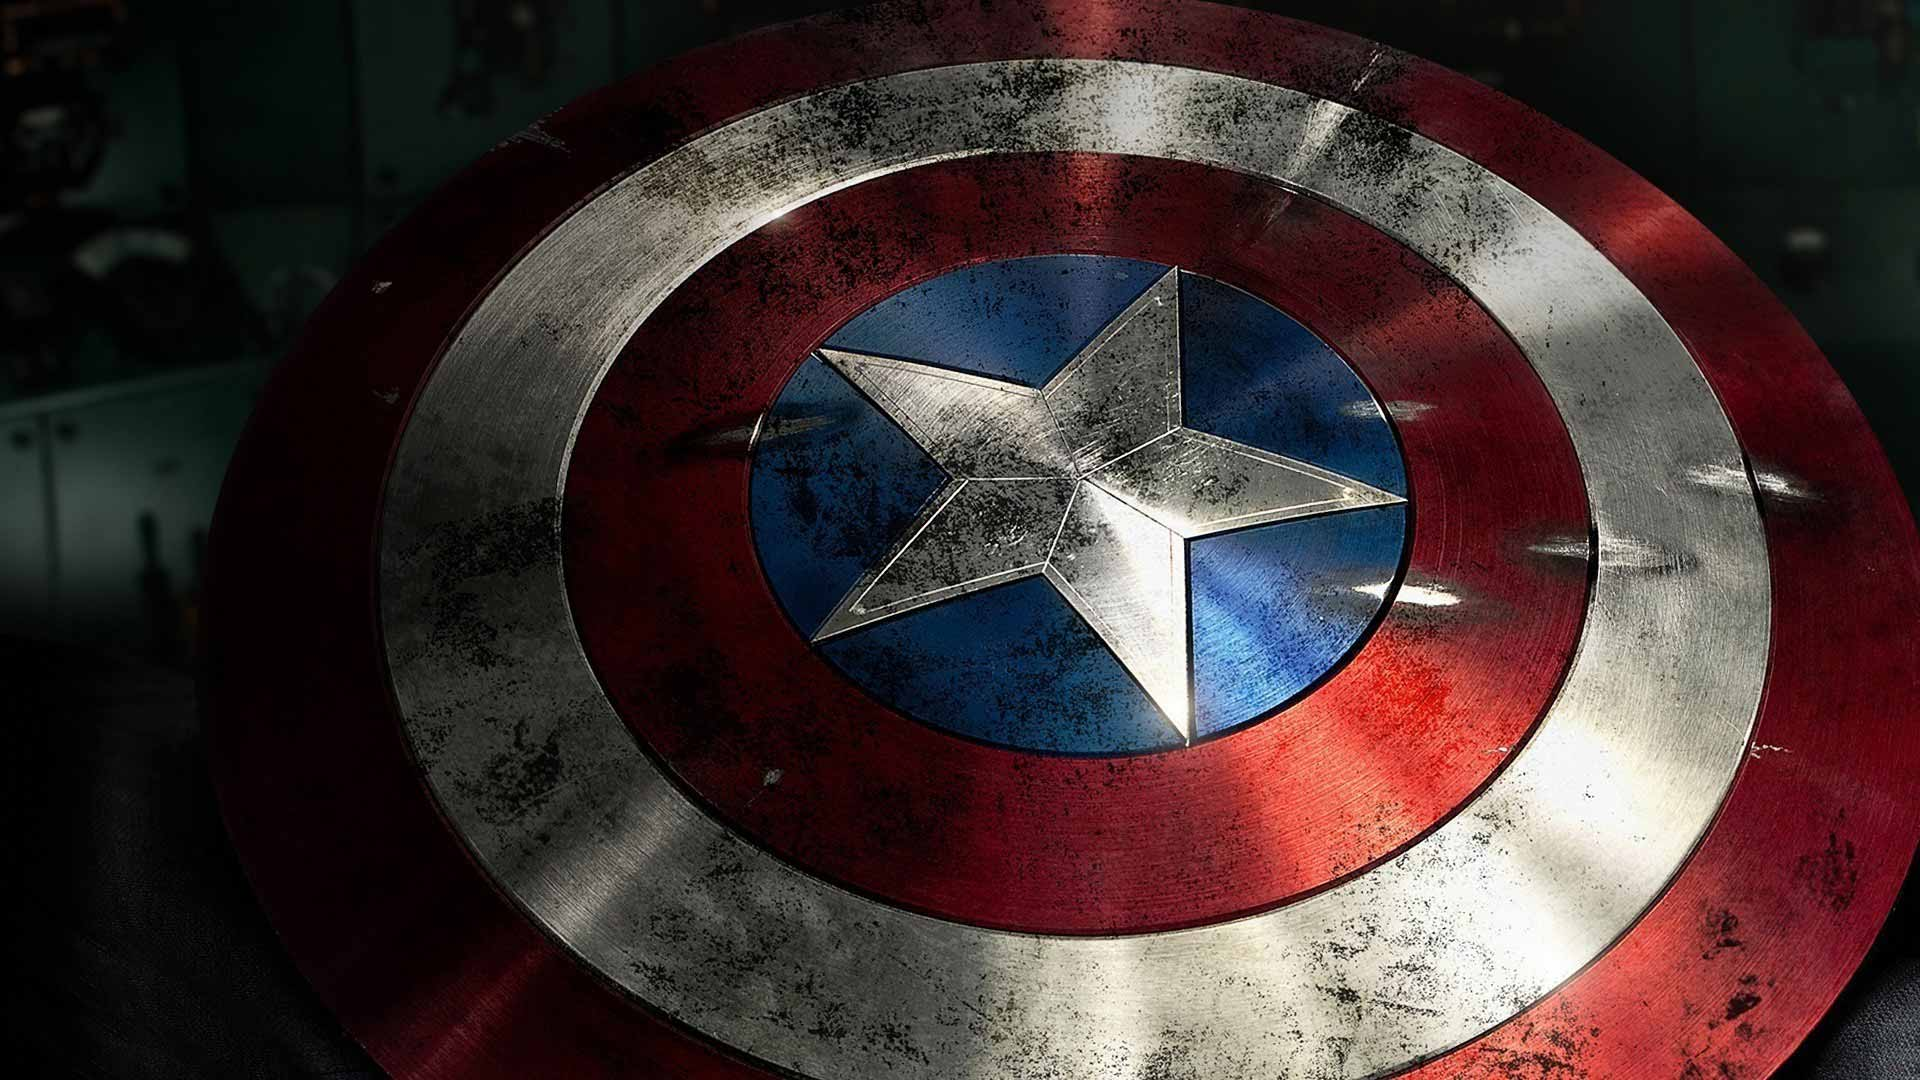 Hd wallpaper of captain america - Captain America Wallpaper Hd